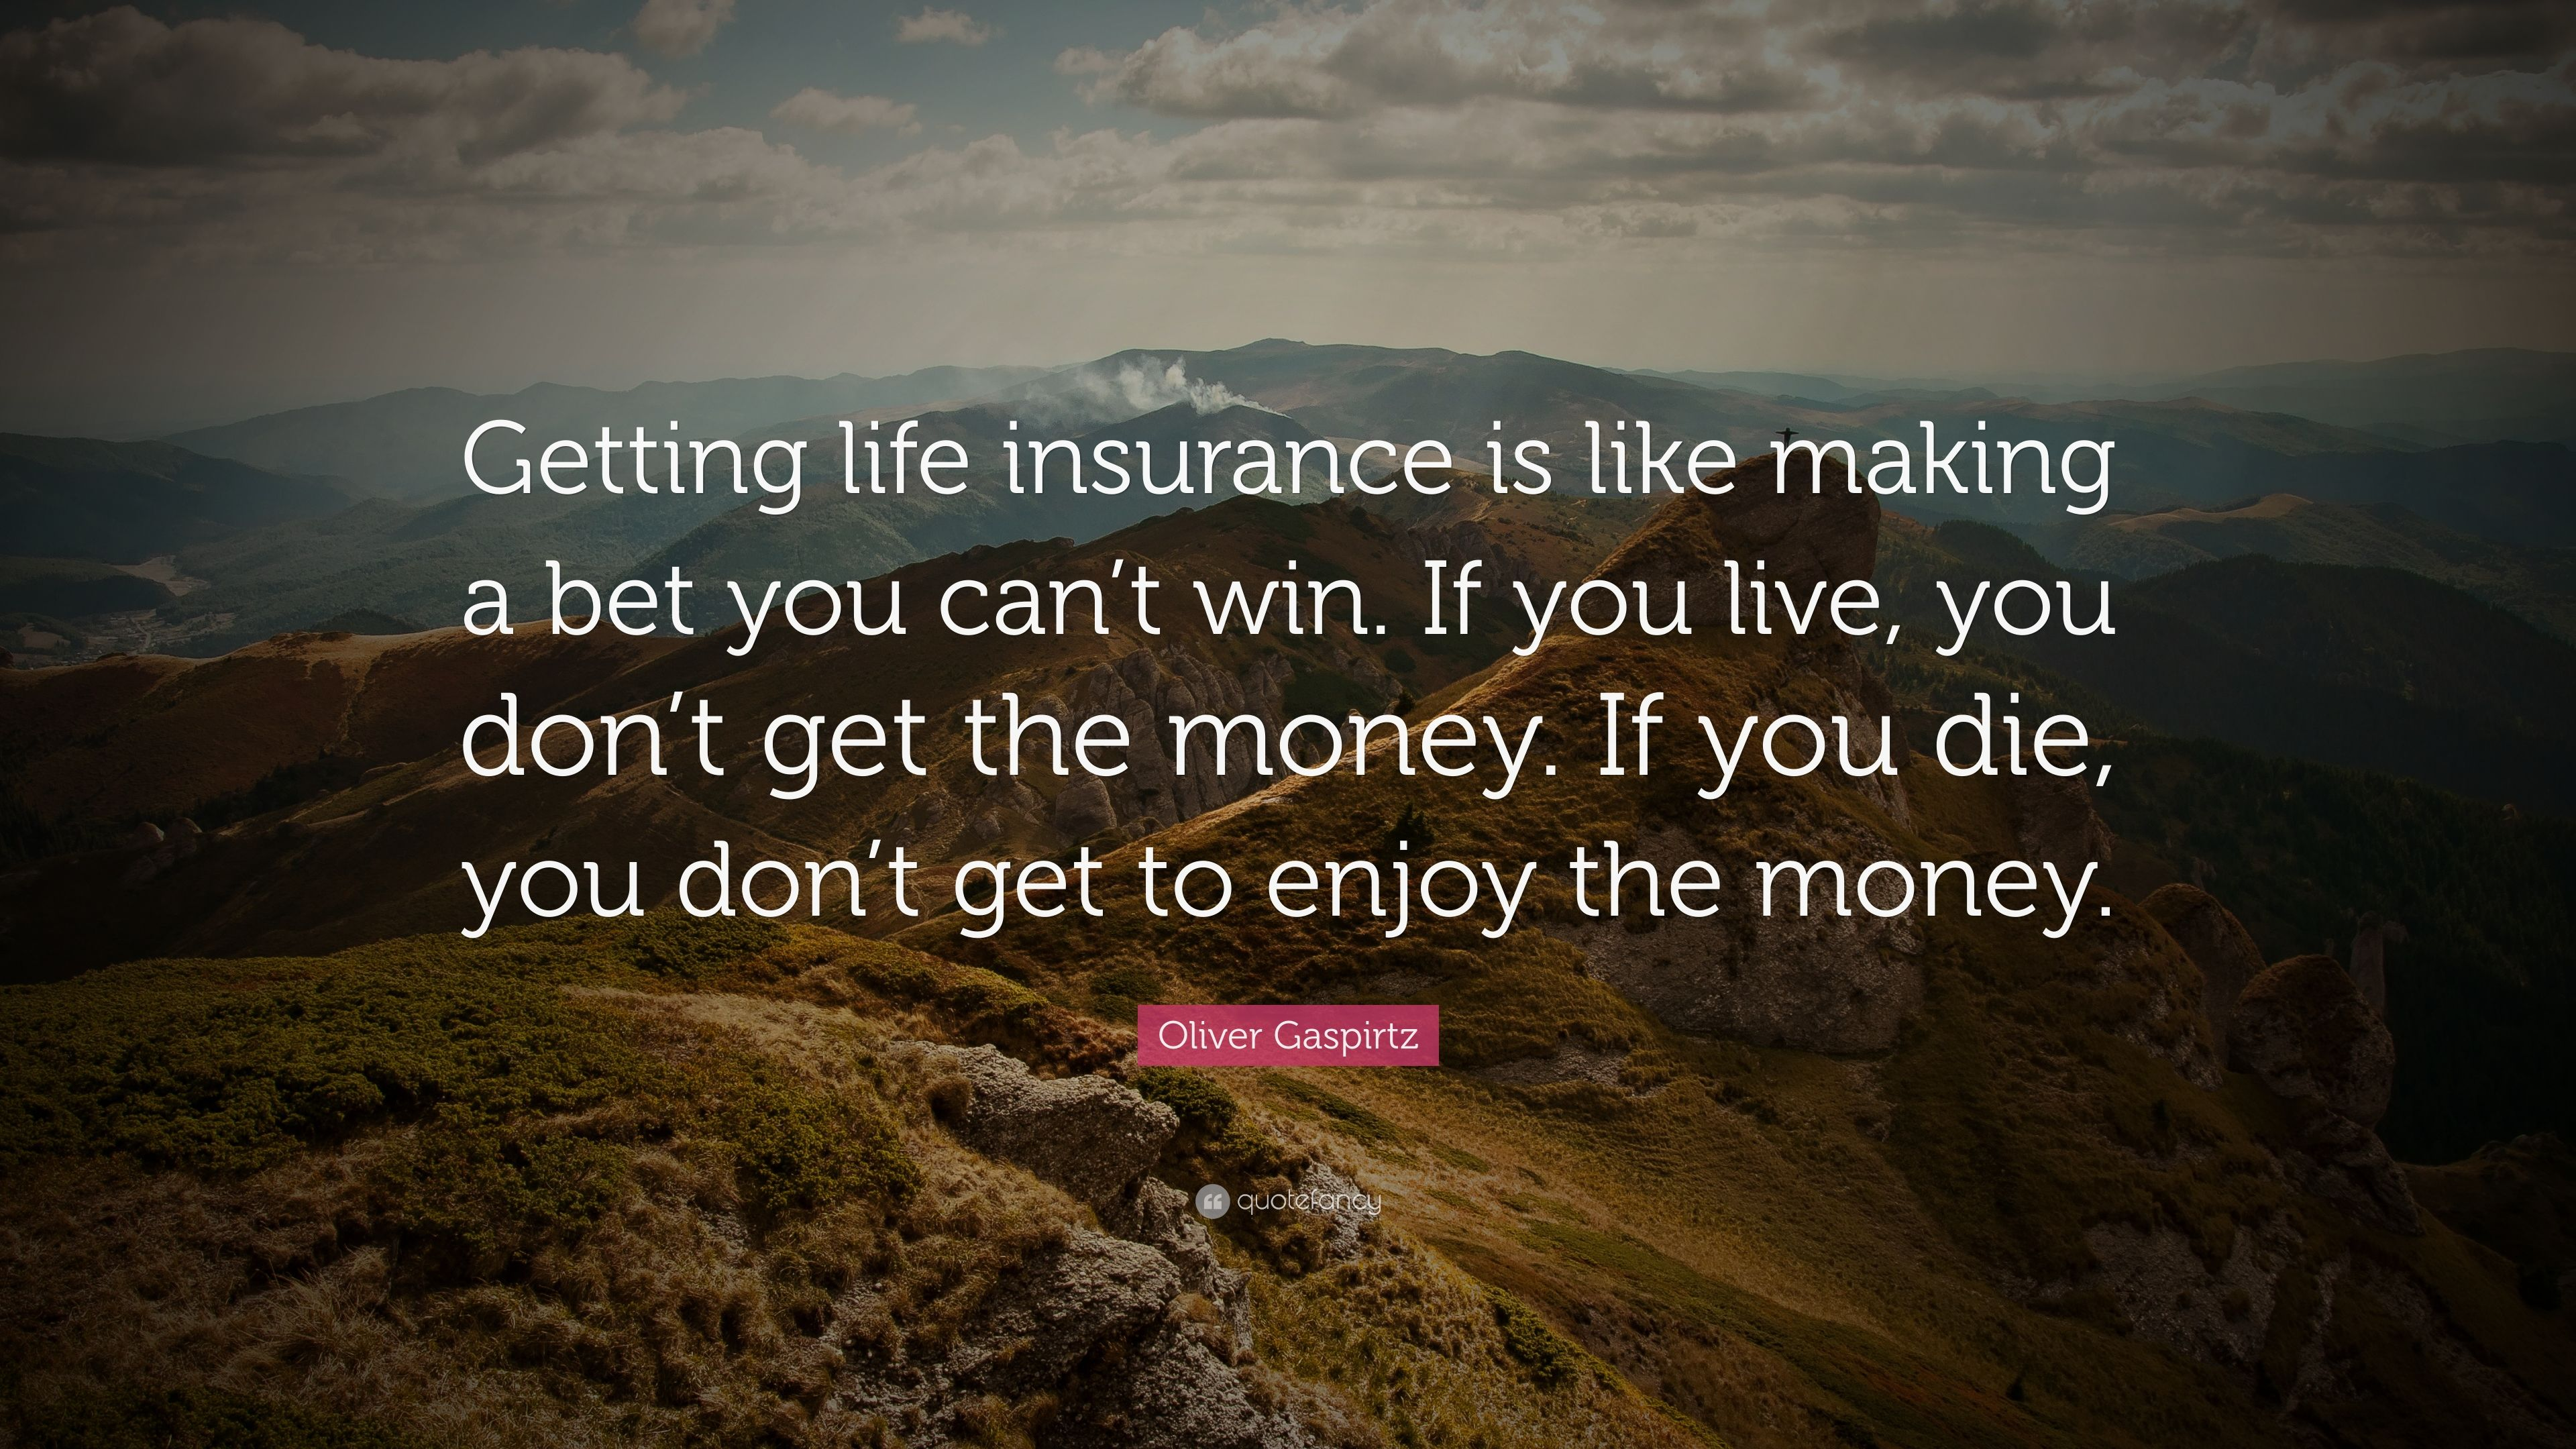 Oliver Gaspirtz Quote: U201cGetting Life Insurance Is Like Making A Bet You Canu0027